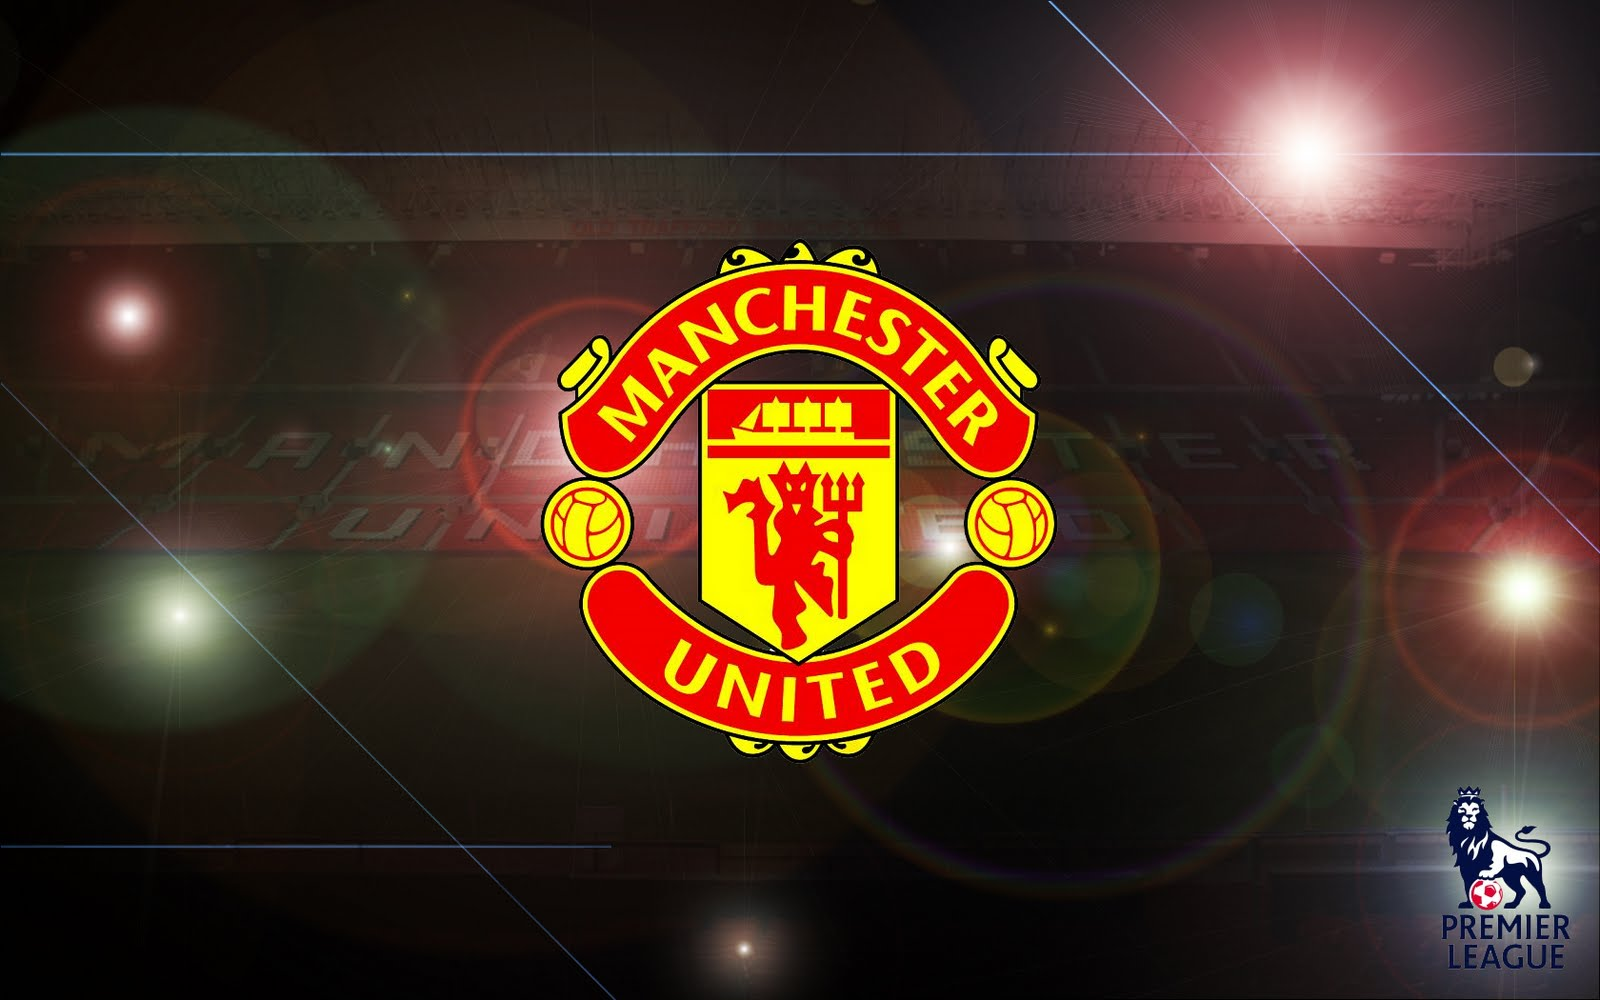 wallpaper manchester united wallpaper 1 manchester united wallpaper 2